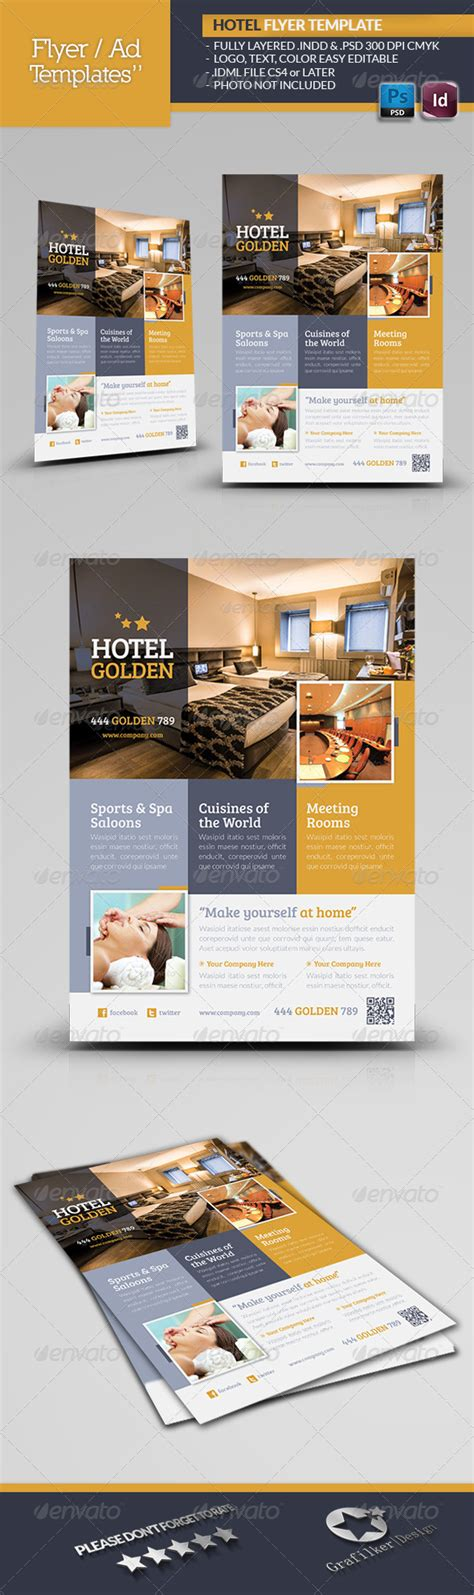 template flyer hotel hotel golden flyer template 4965721 stock vector